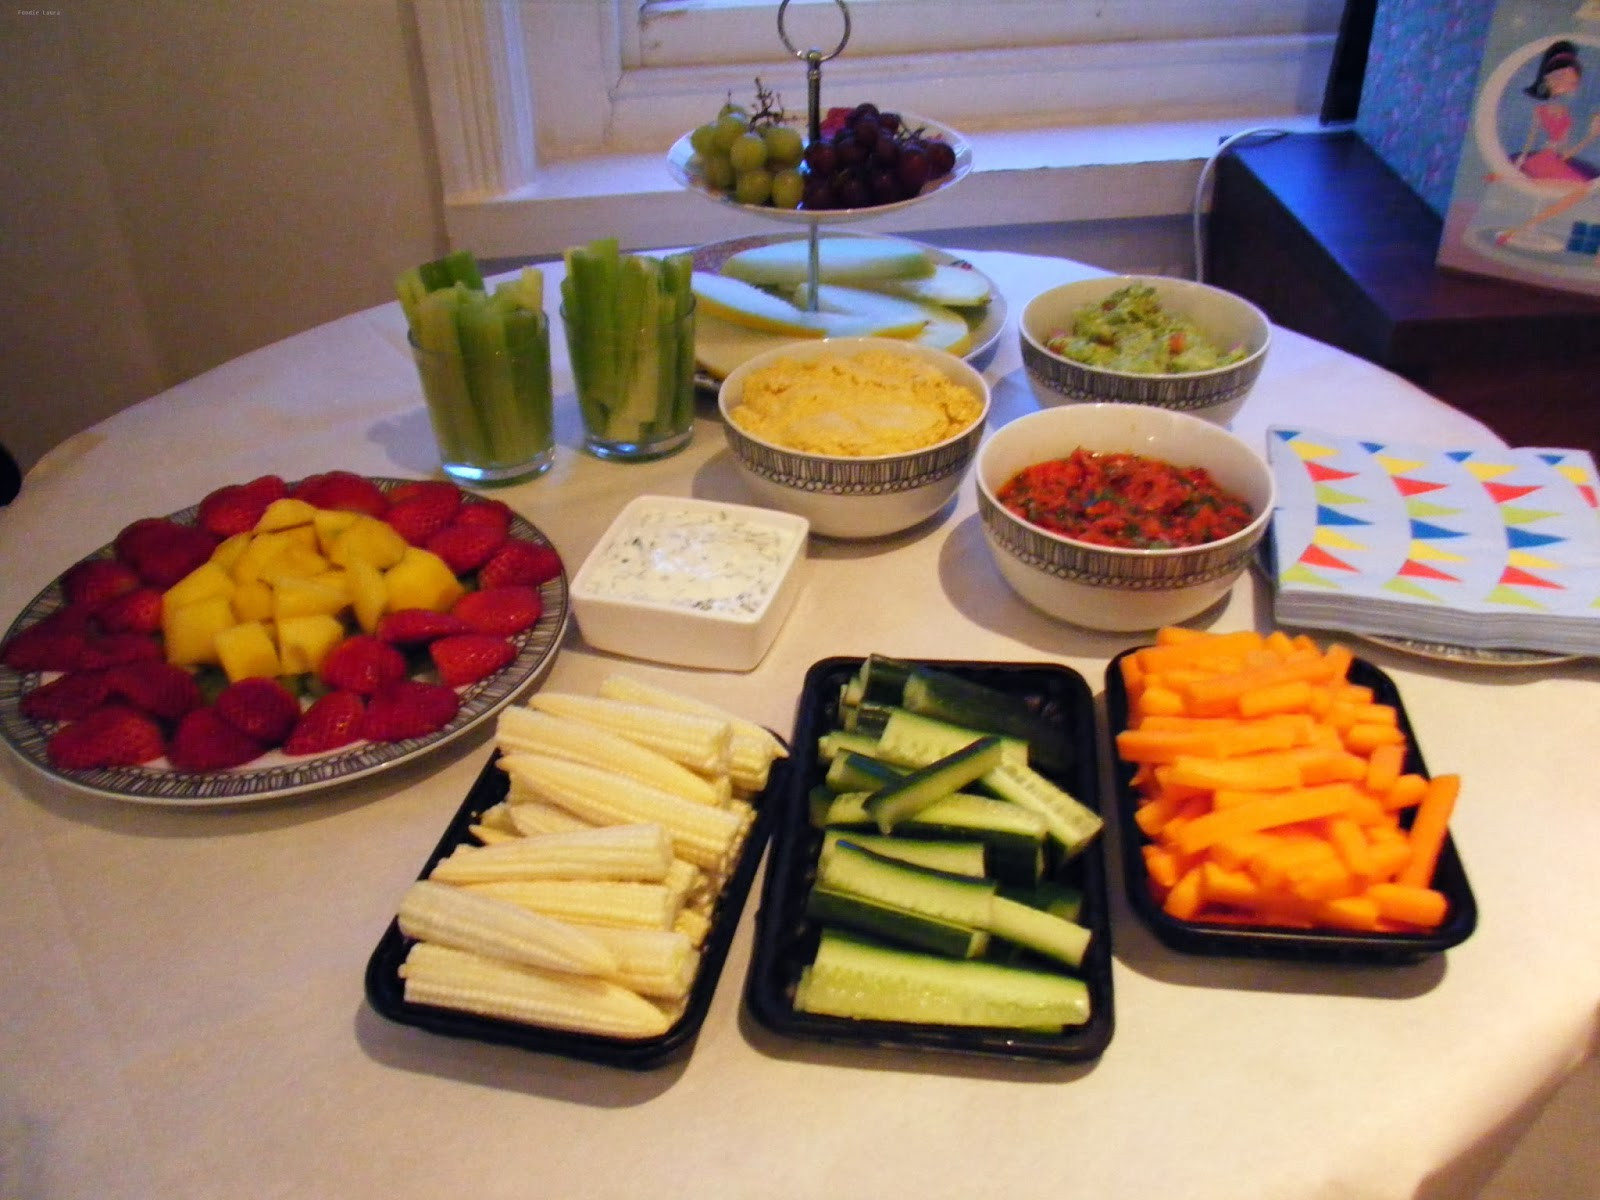 Healthy Snacks For A Party  Healthy Party Foods Ideas & Tips